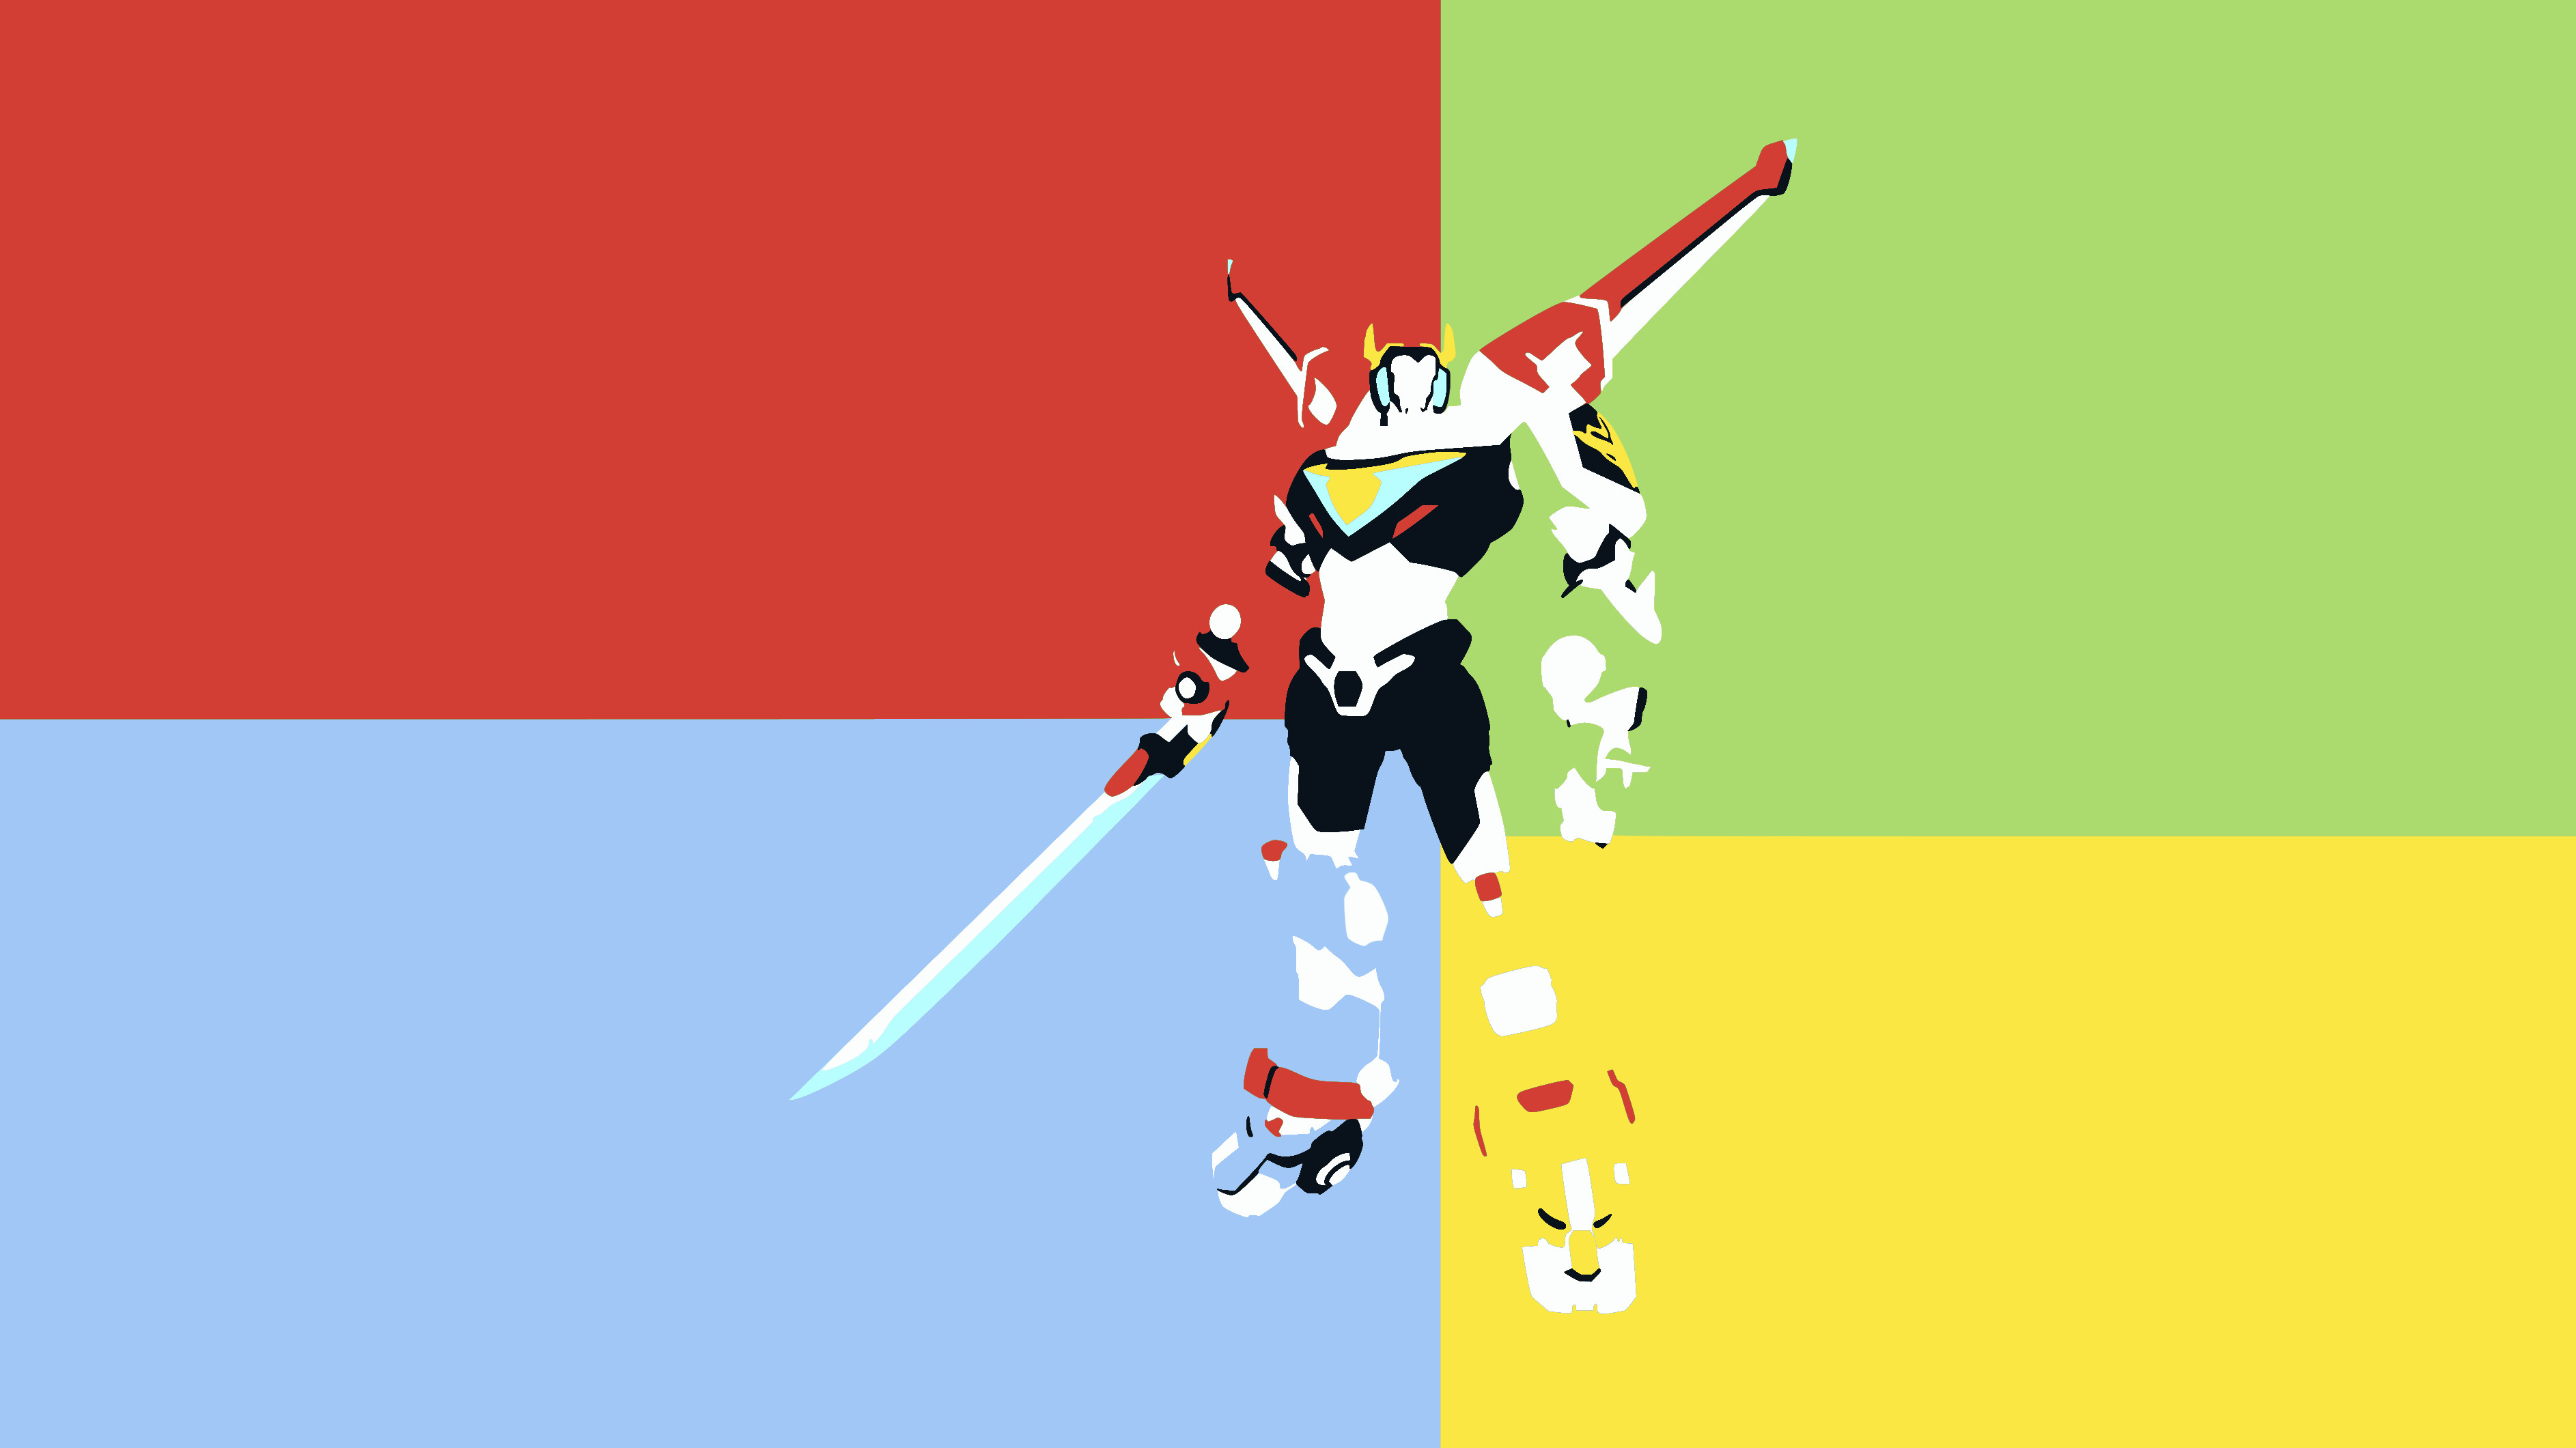 Voltron Minimalist Wallpaper by DamionMauville Voltron Minimalist Wallpaper  by DamionMauville